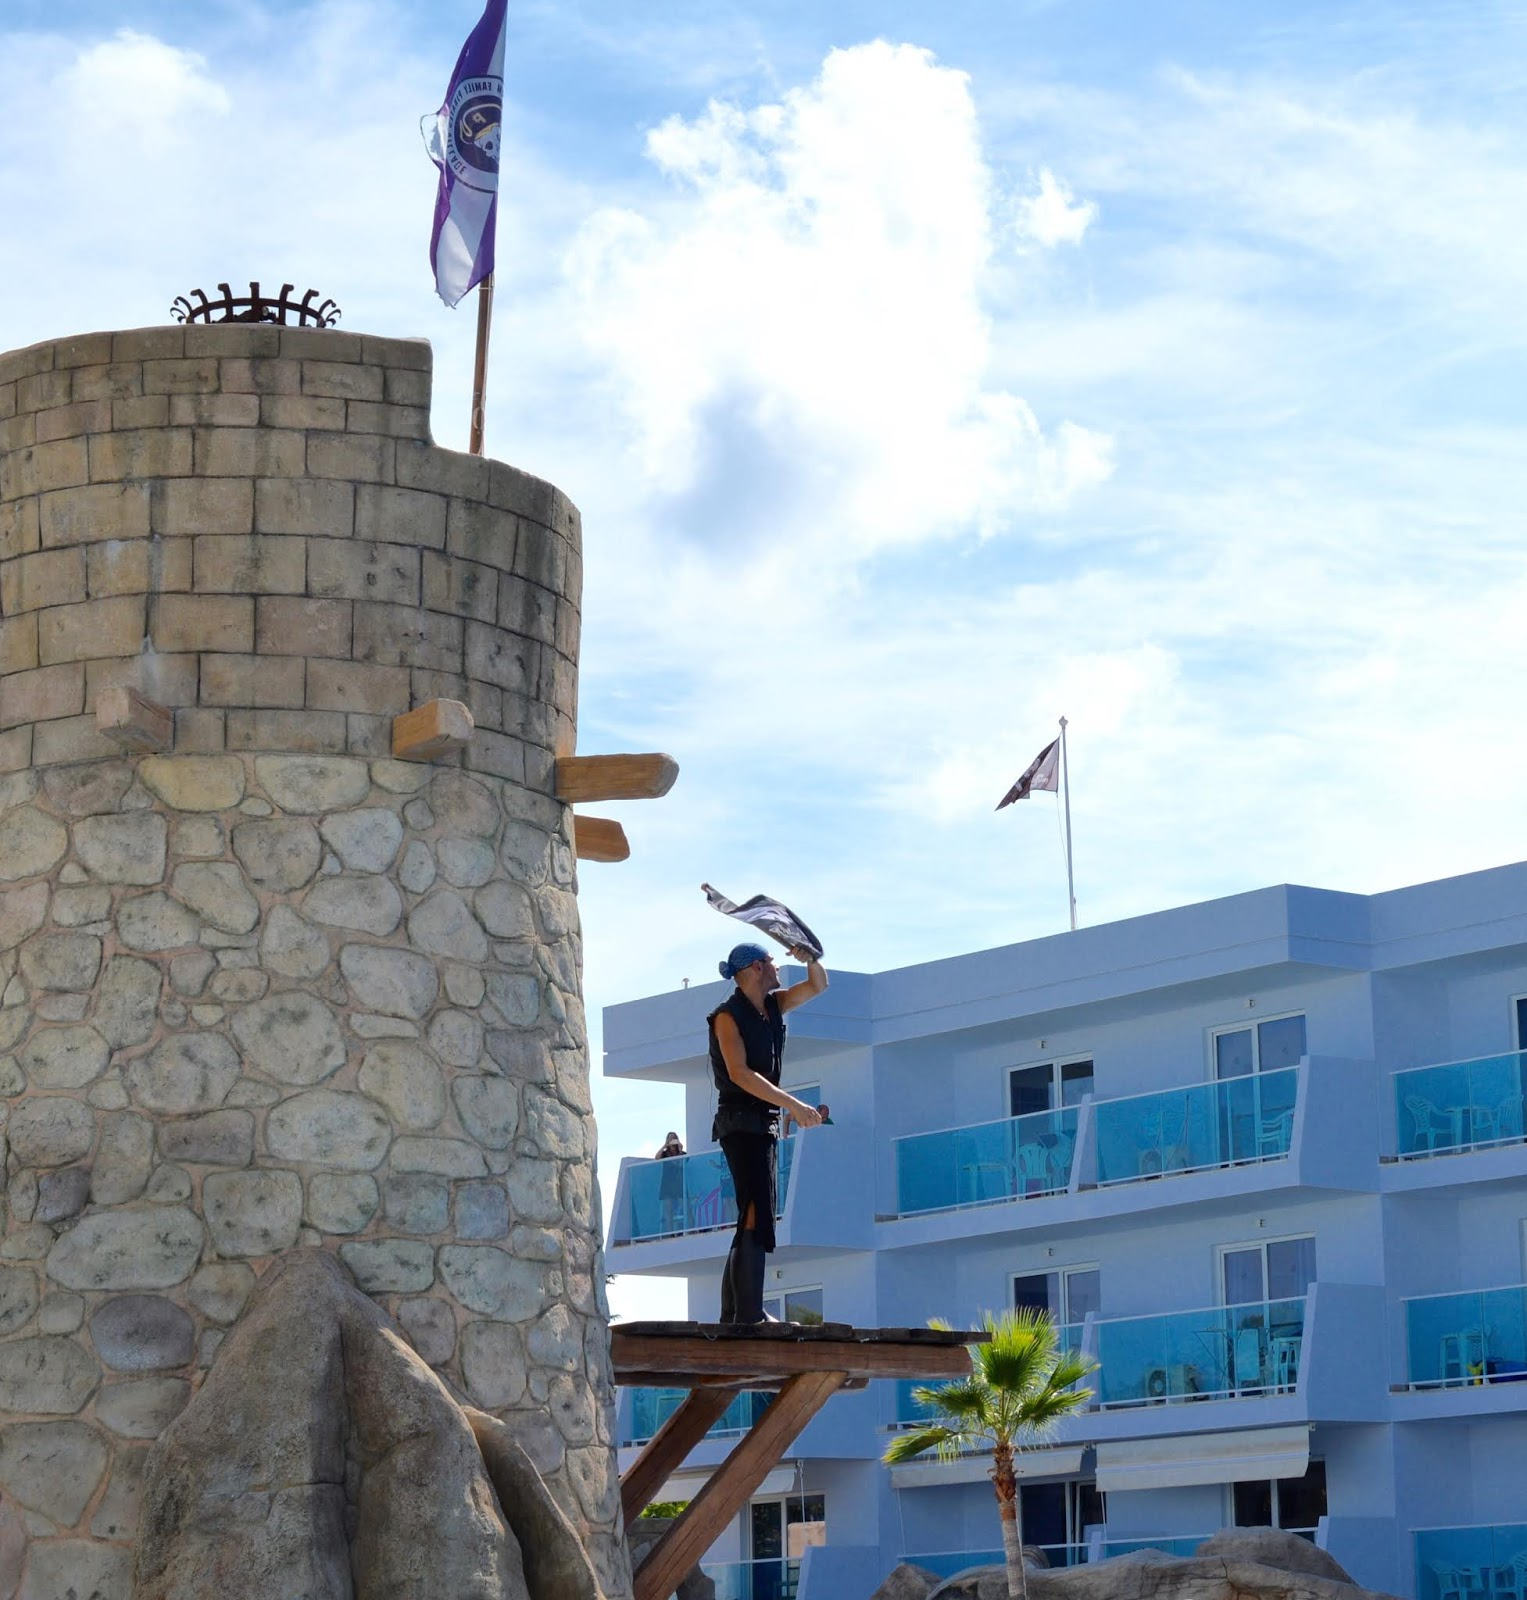 Pirates Village Santa Ponsa | Jet 2 Holidays Review  - pirates attack walk the plank